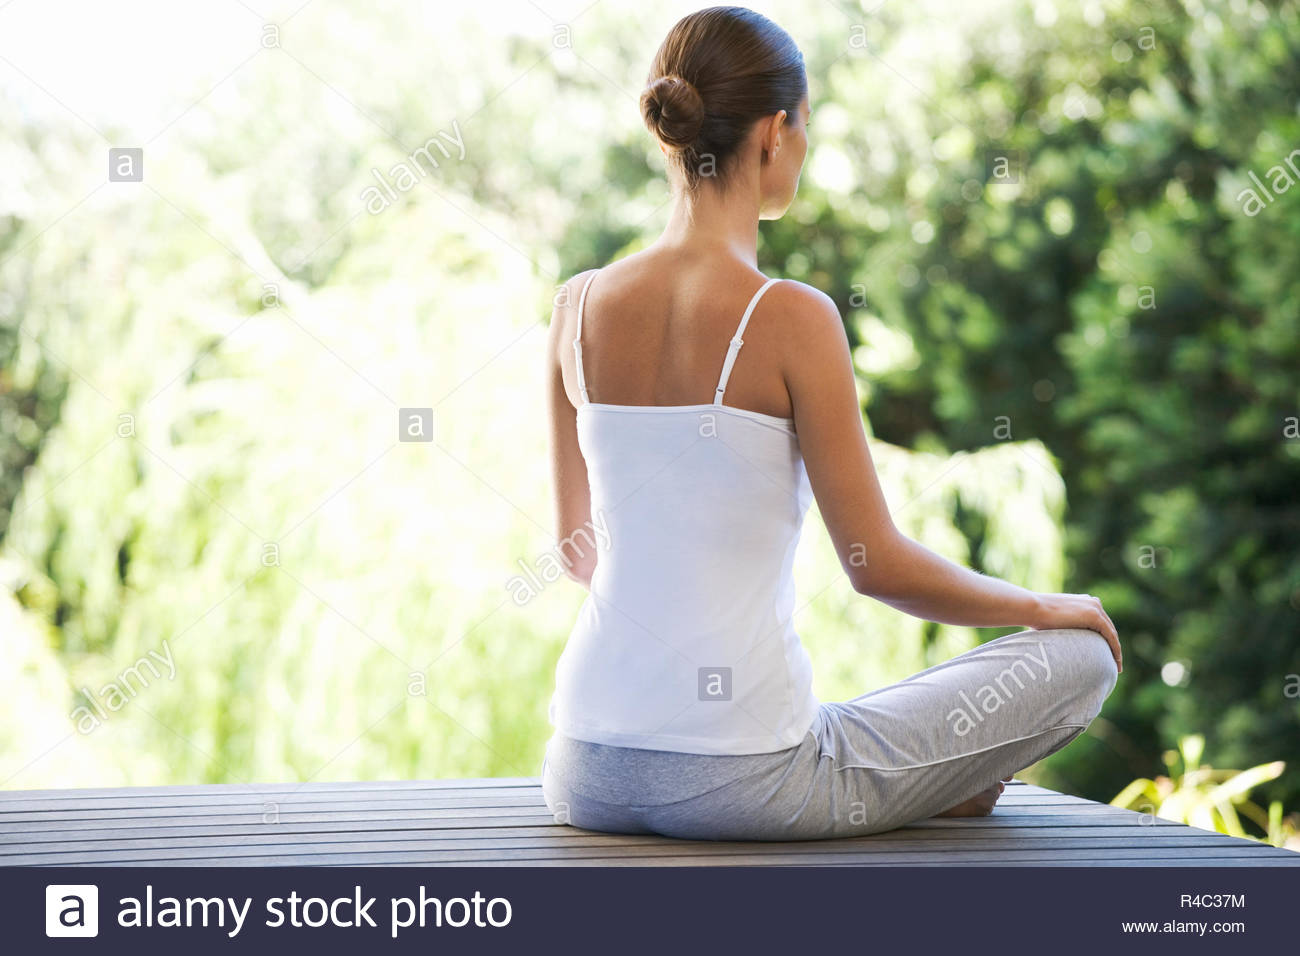 A young woman meditating - Stock Image